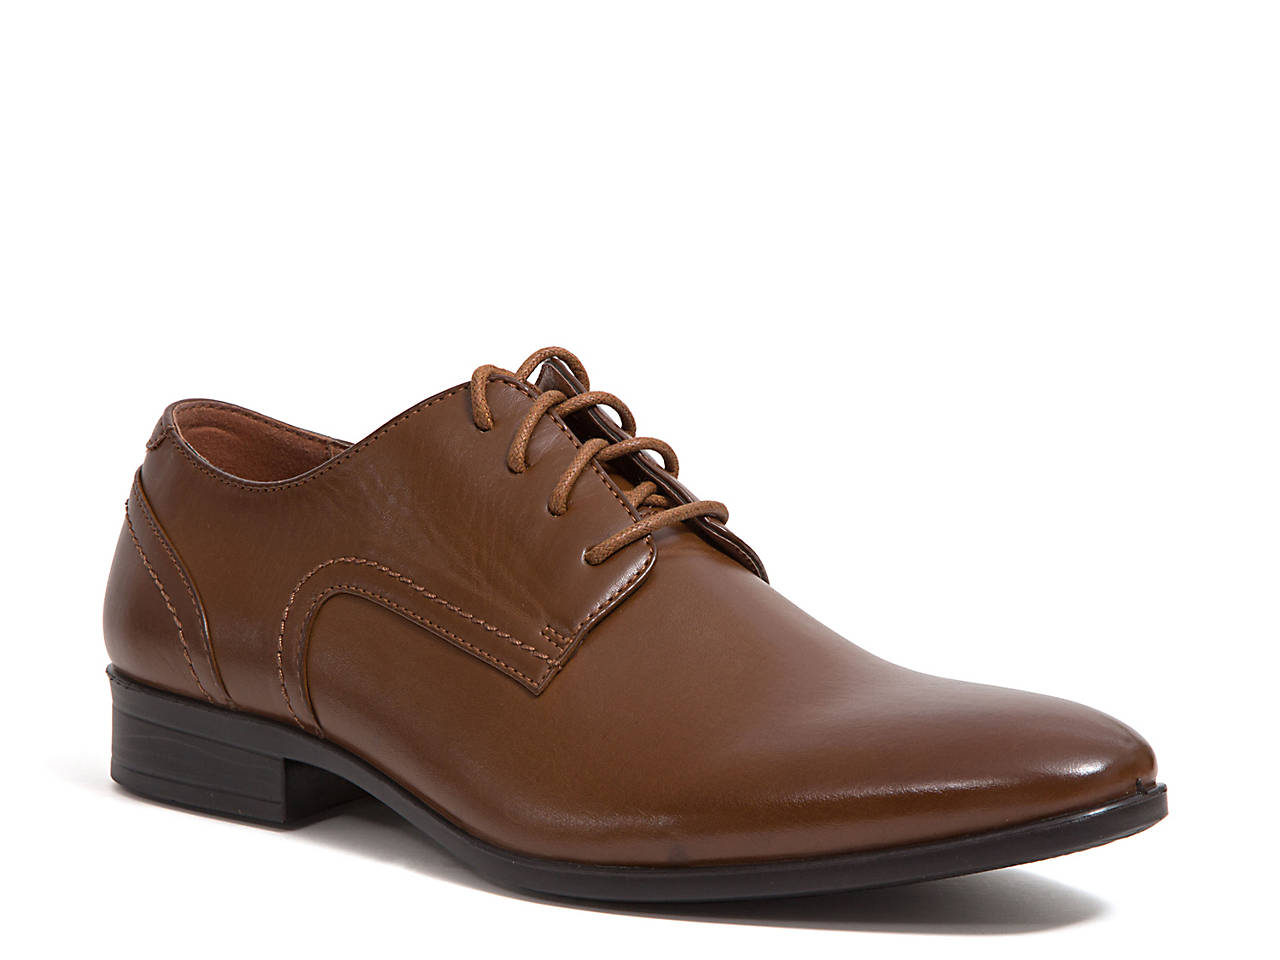 Deer Stags Shipley Men's ... Oxford Shoes outlet 100% guaranteed outlet popular eastbay online YXGCMFYaW5